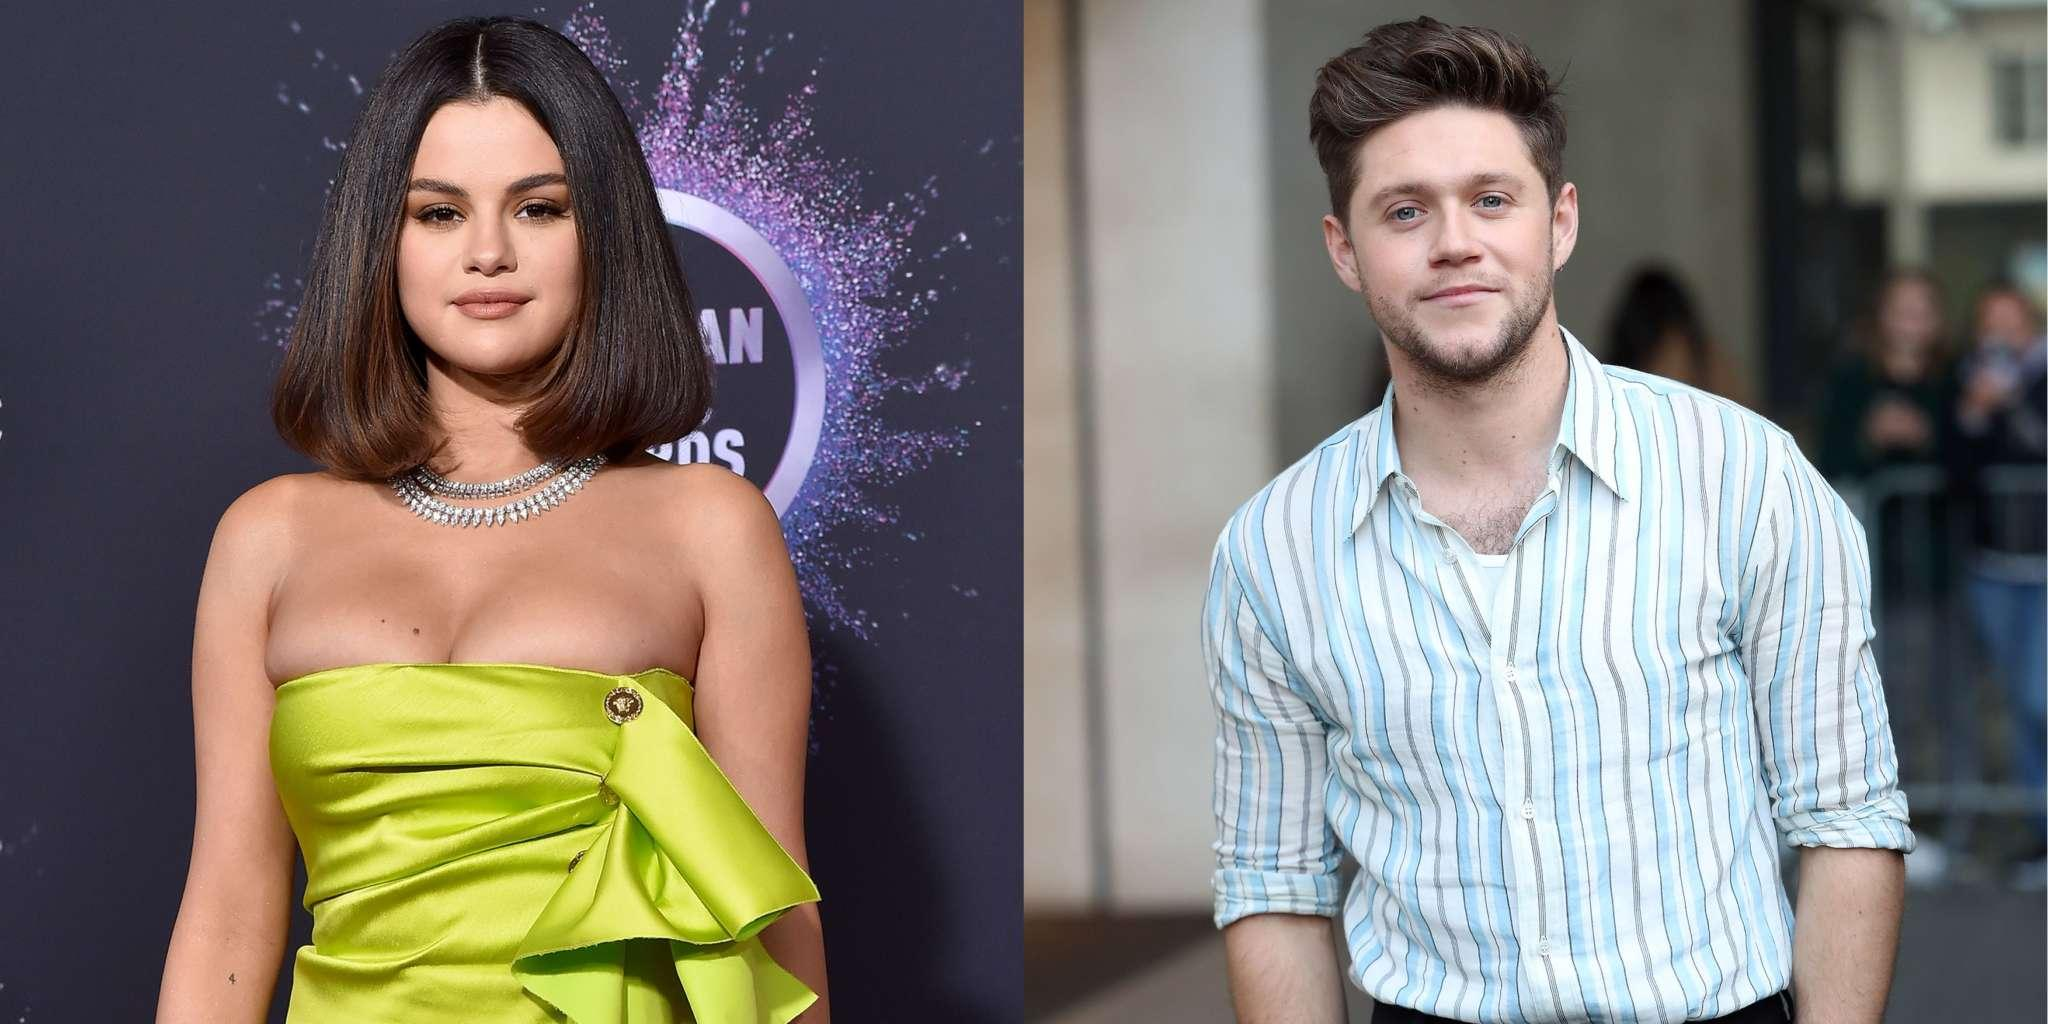 Niall Horan Addresses The Rumors That He And Selena Gomez Are Dating!